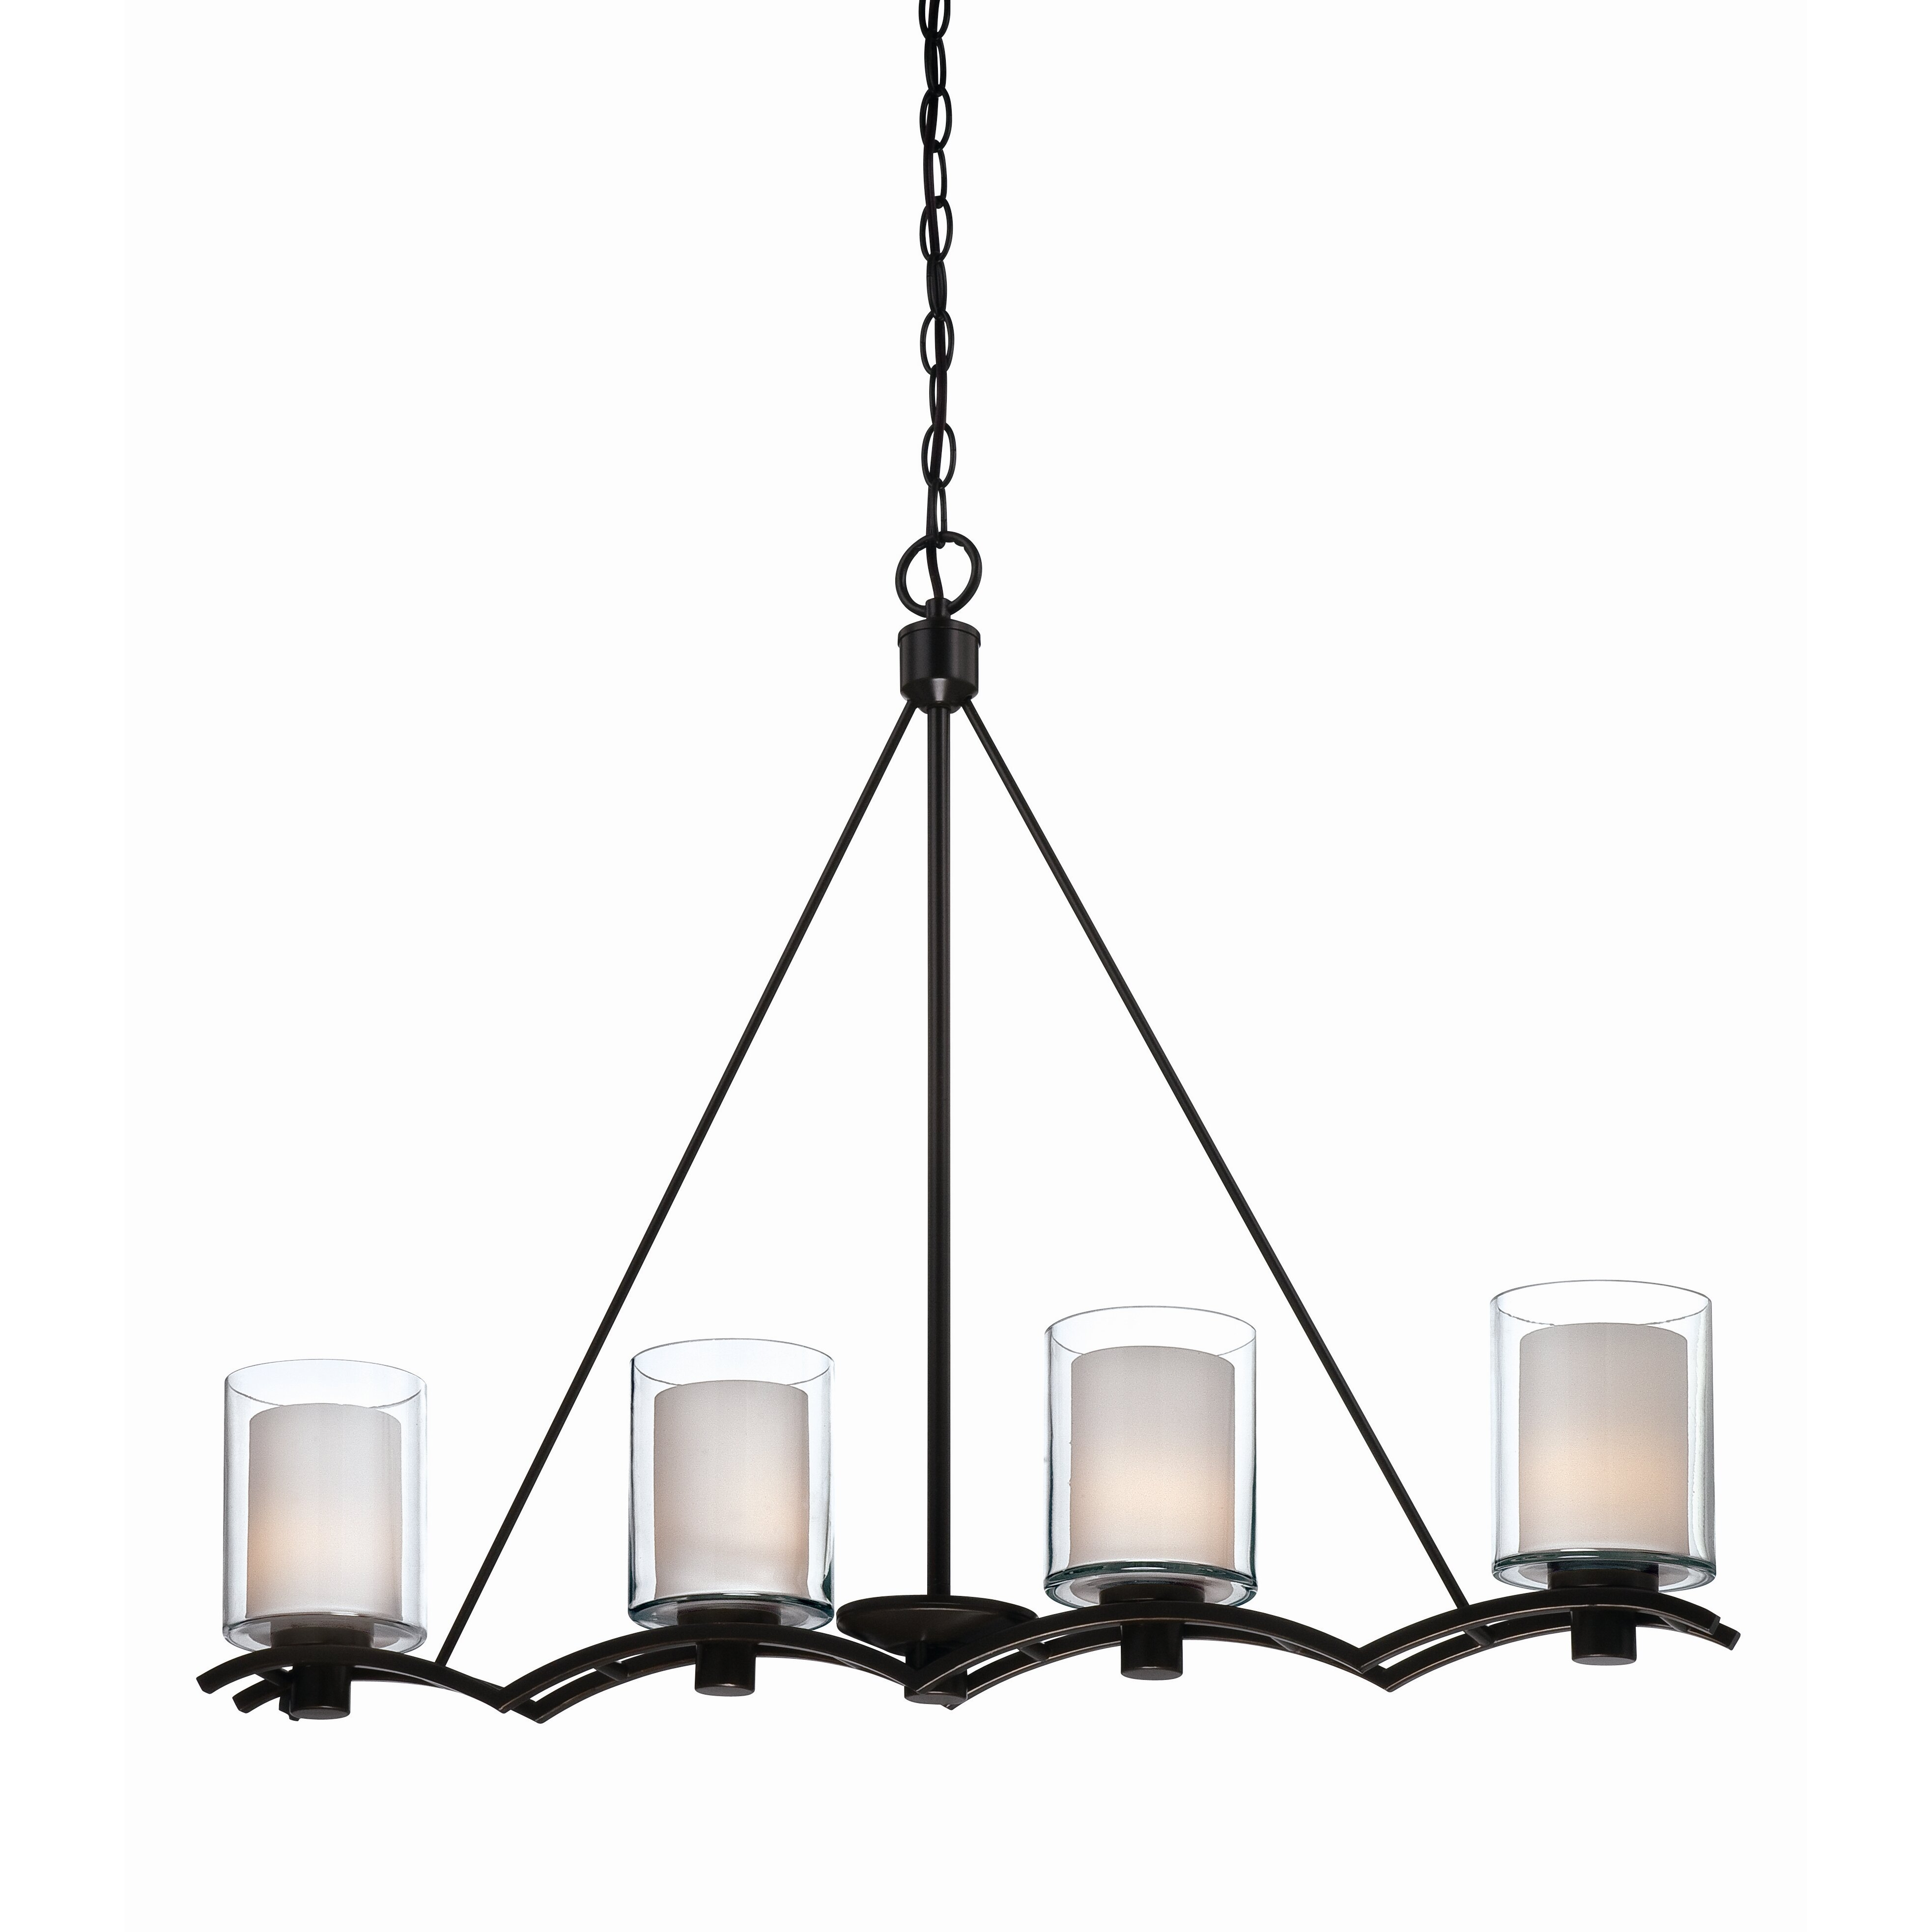 Artcraft Lighting Andover 4 Light Kitchen Island Pendant  Reviews  Wayfair